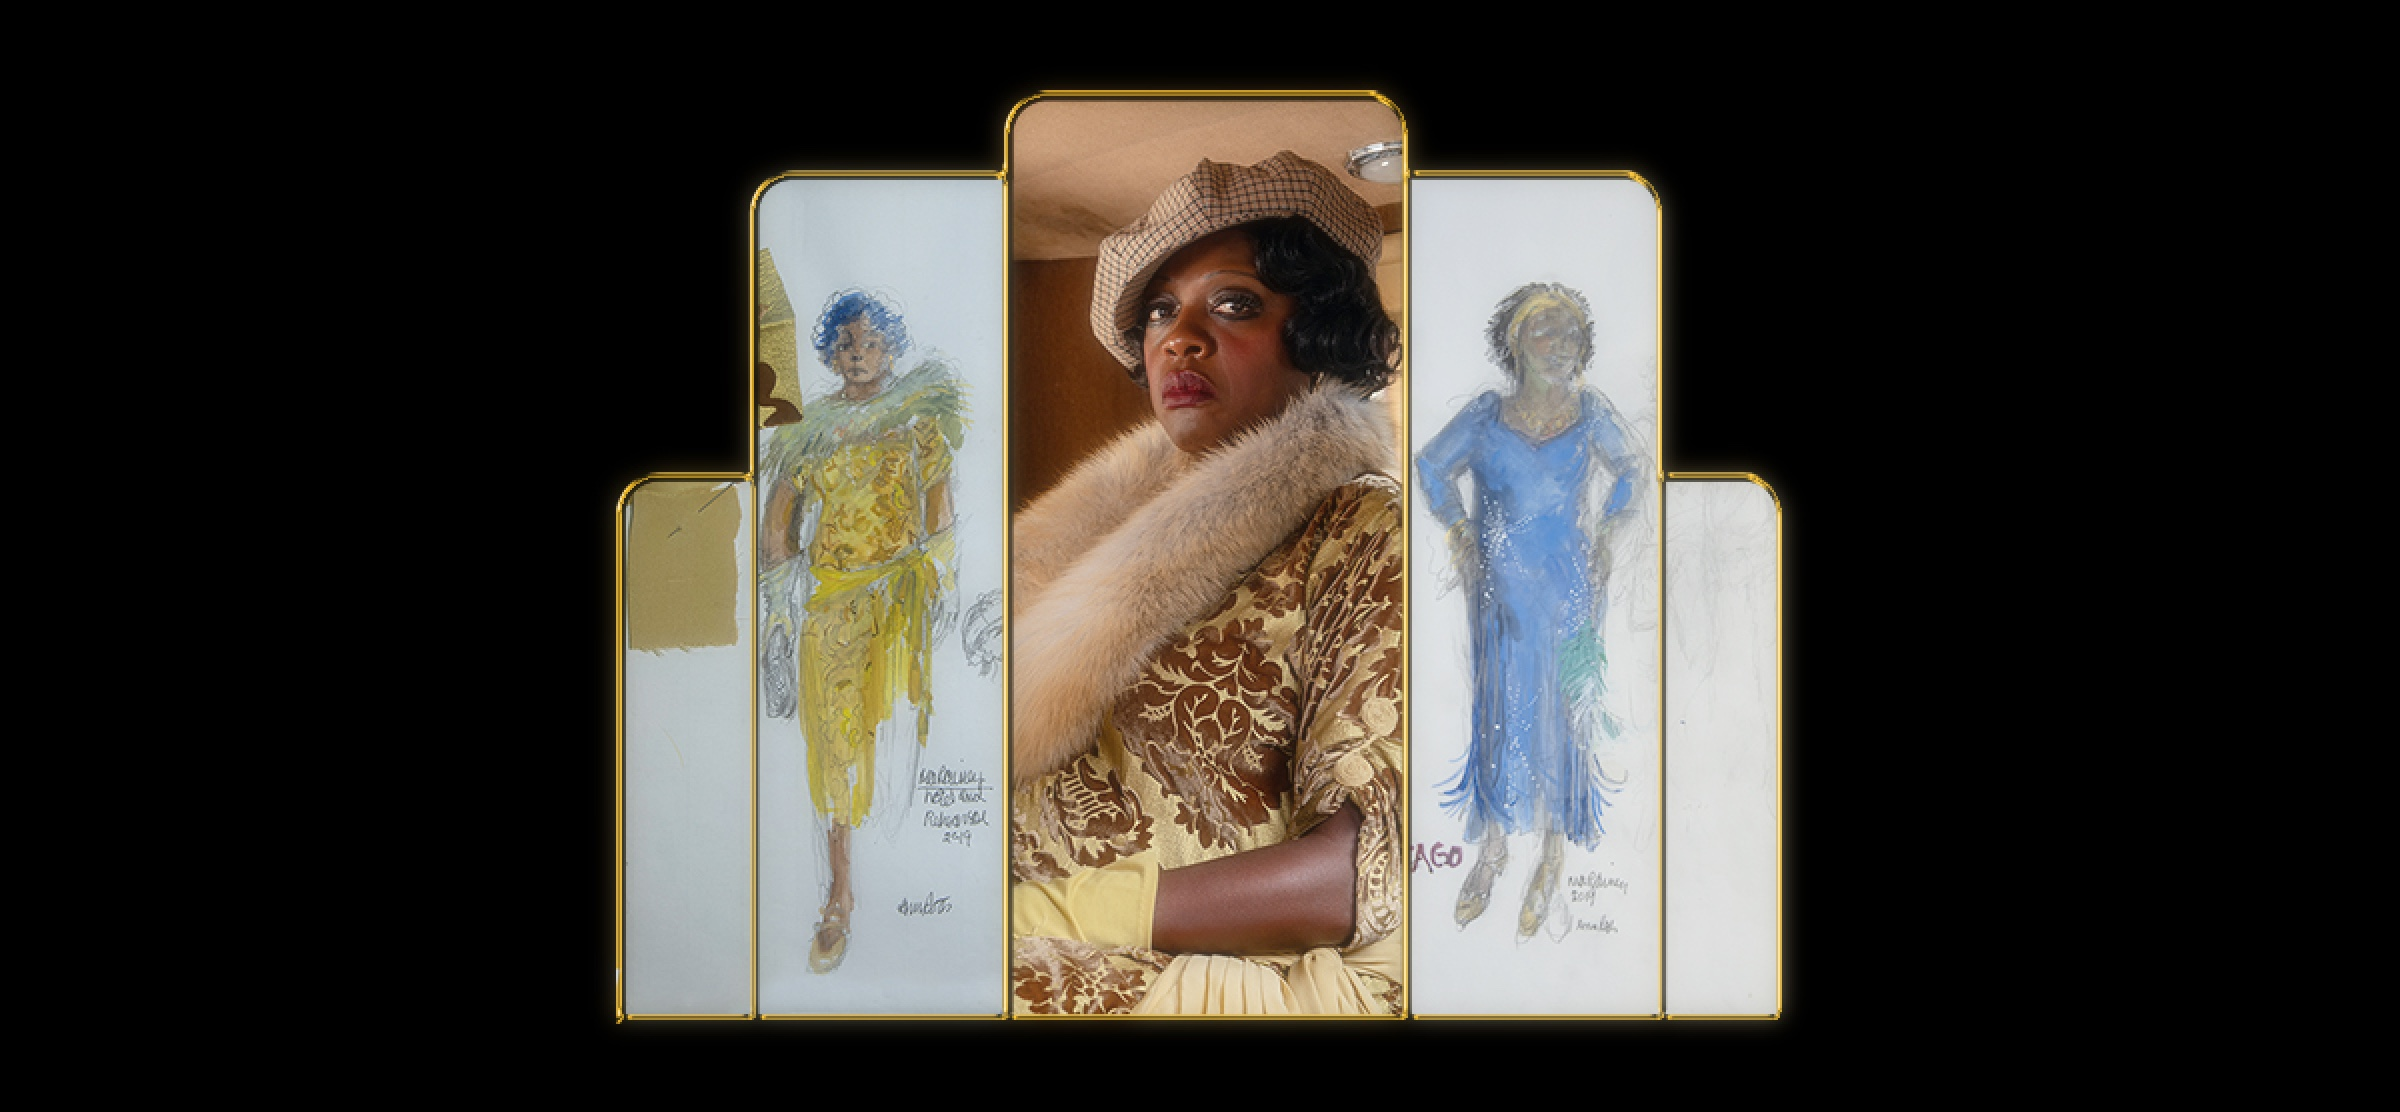 Viola Davis as Ma Rainey in Ma Rainey's Black Bottom. She wears a checked cap and a light-colored fur. The still image from the film appears between two costume sketches, the first showing Ma in yellow, the second depicting her in blue.